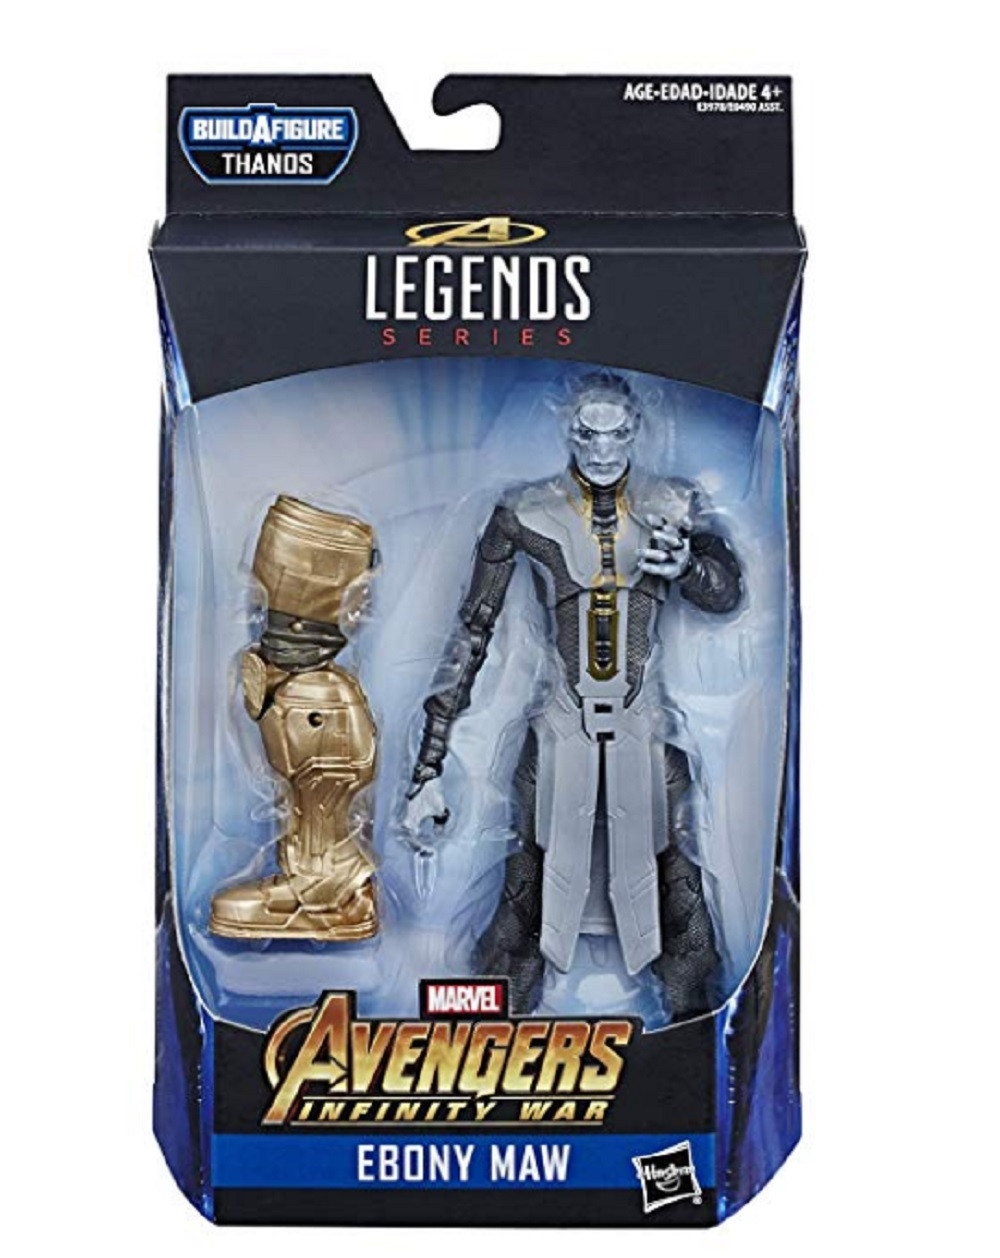 Action Figures - Marvel Legends - Avengers Infinity War - Ebony Maw - 7 Inch